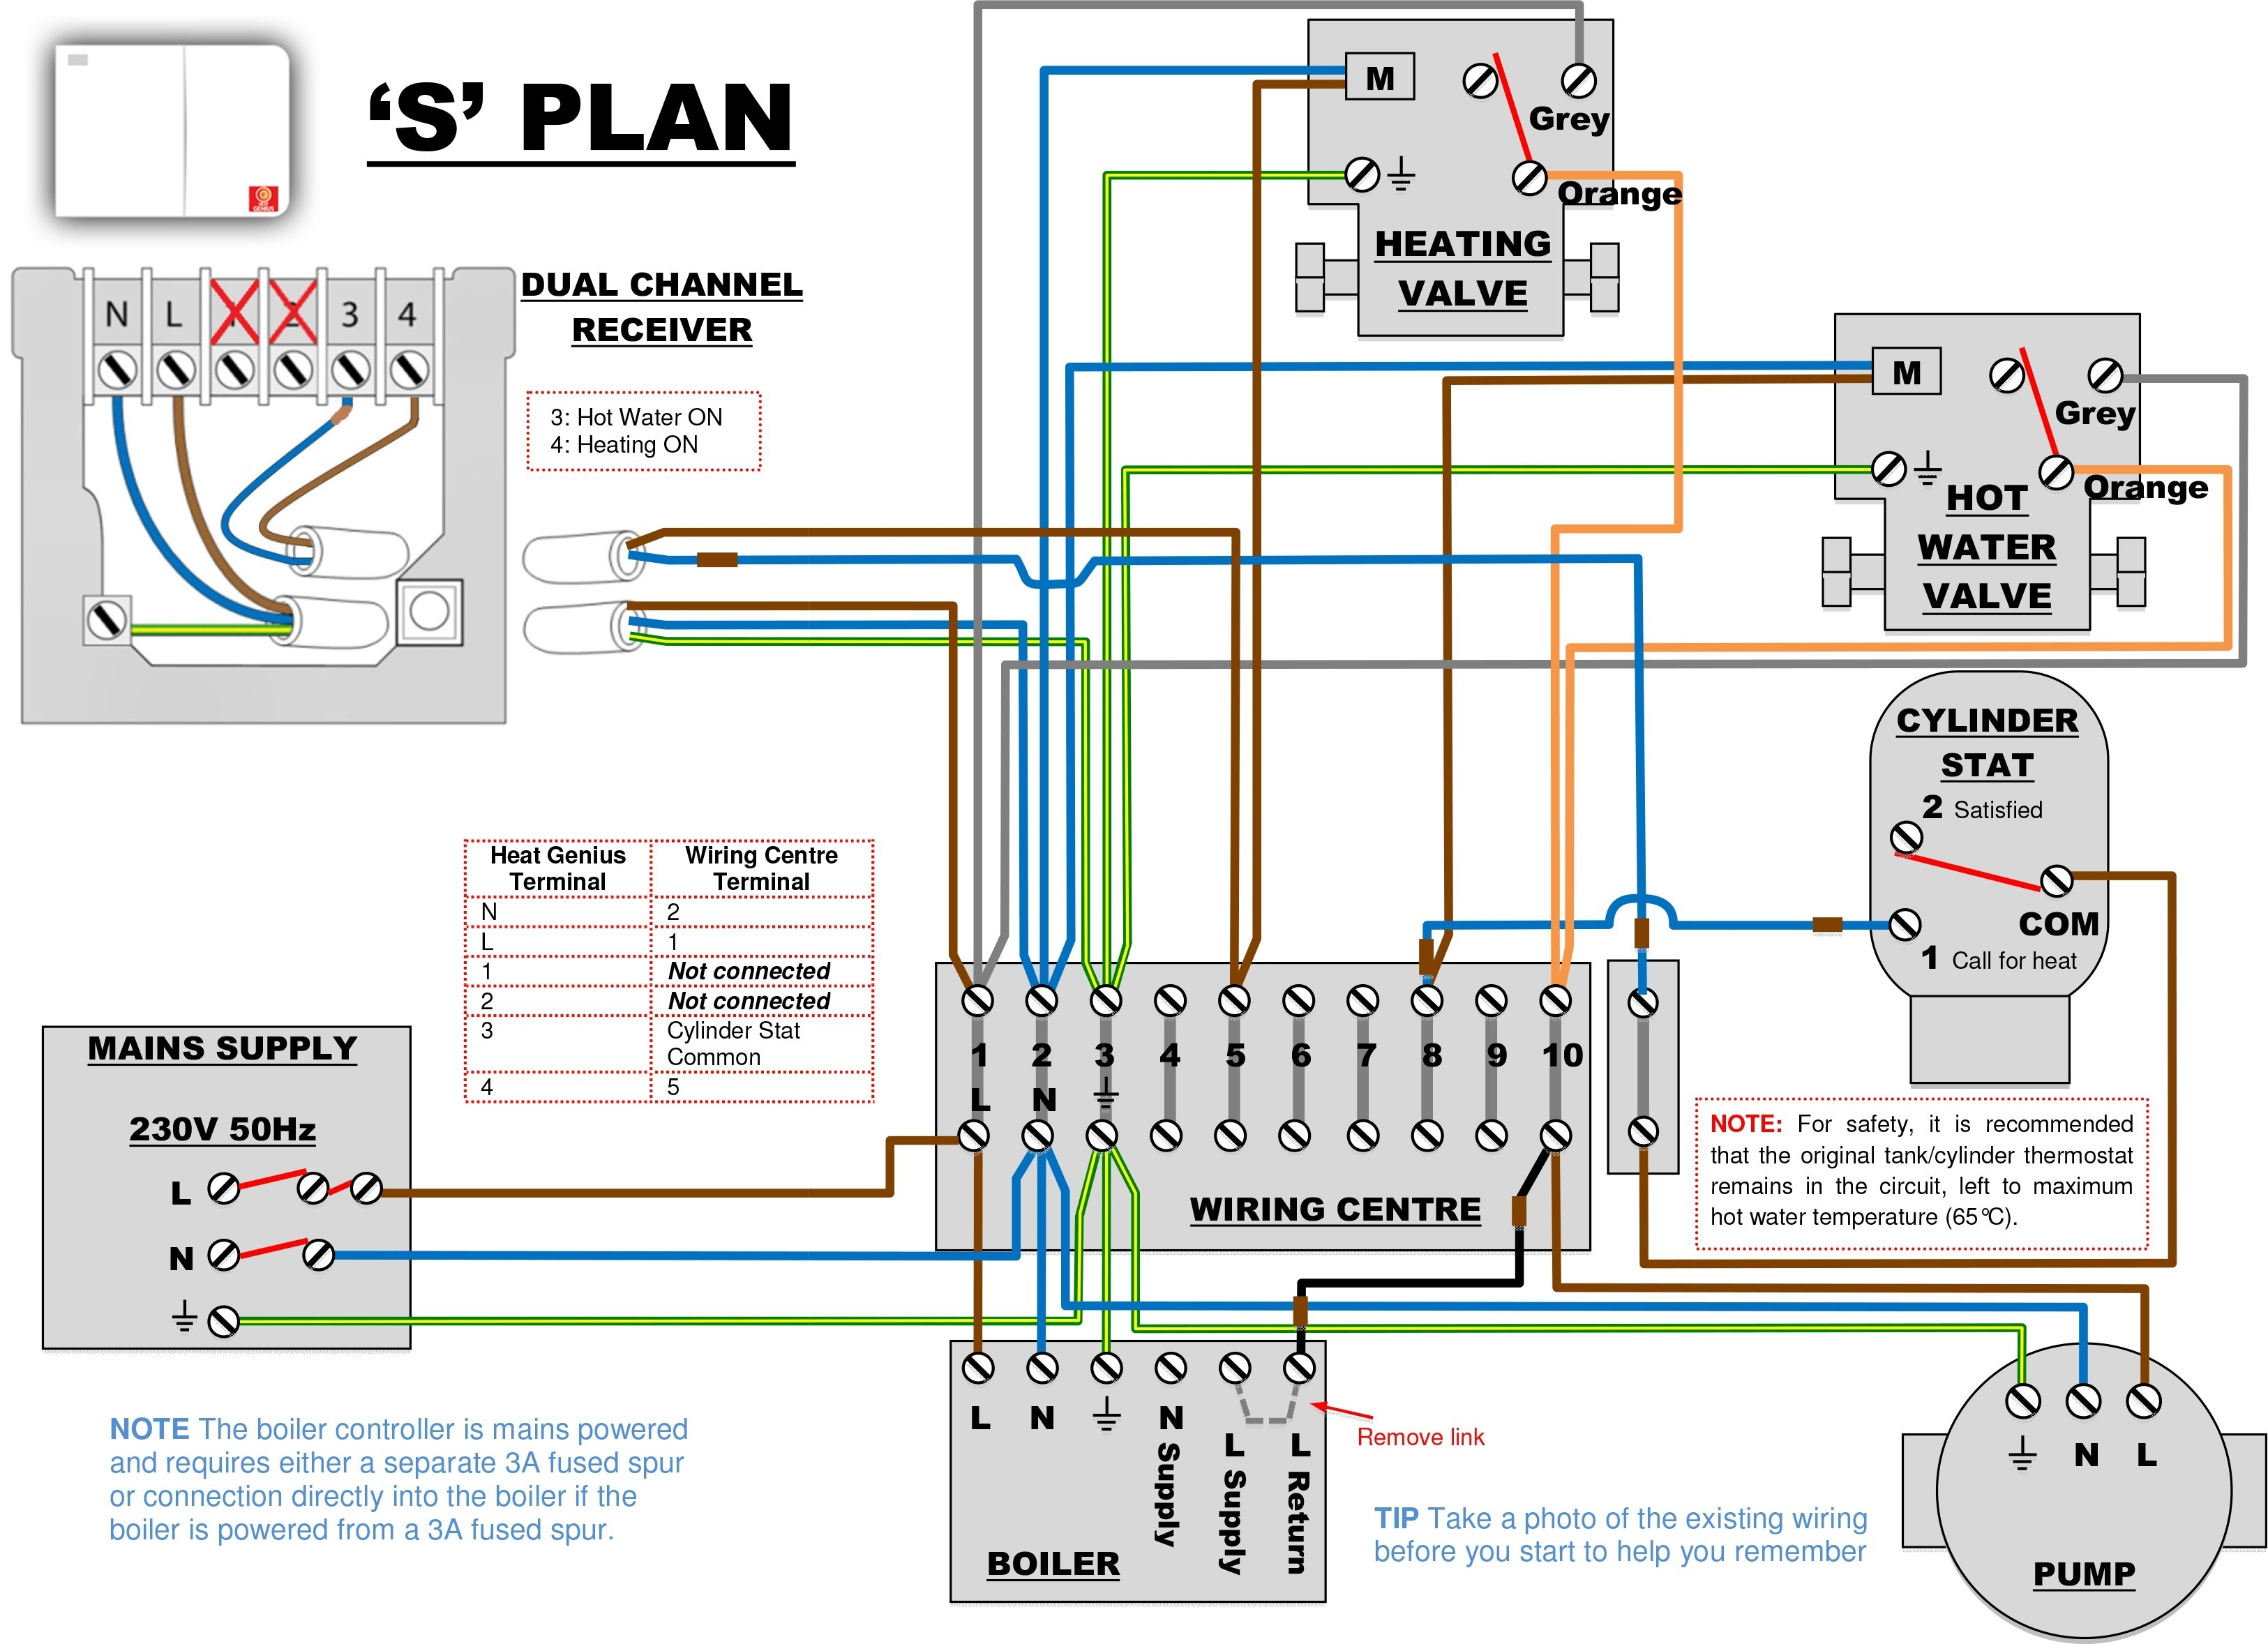 Nest thermostat Wiring Diagram Heat Pump | Free Wiring Diagram on